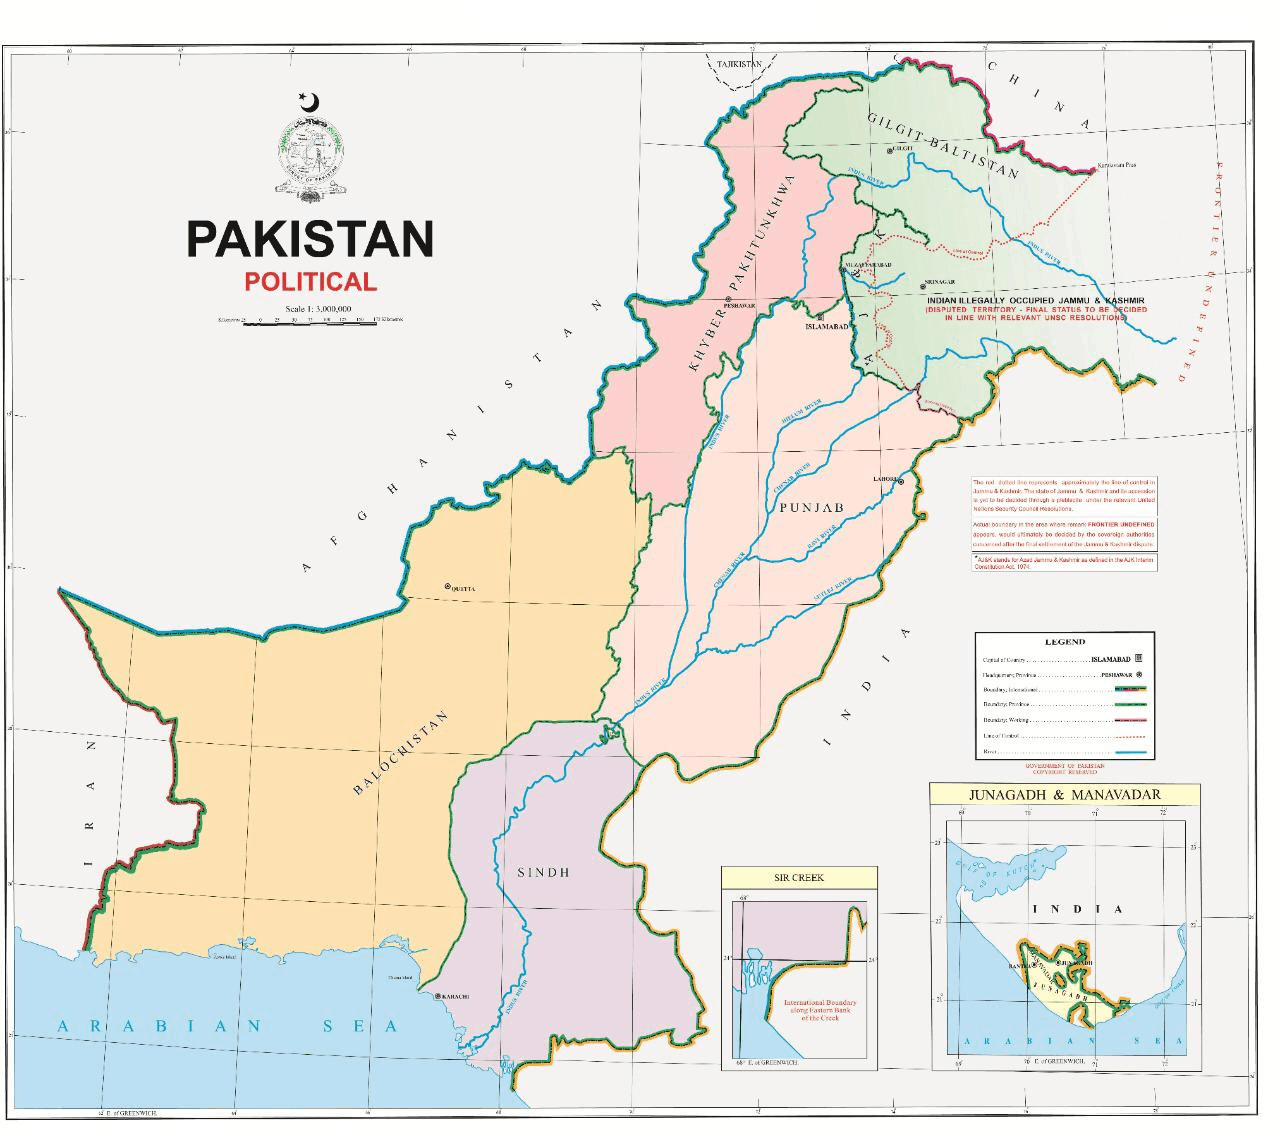 PM unveils new political map of Pakistan 6